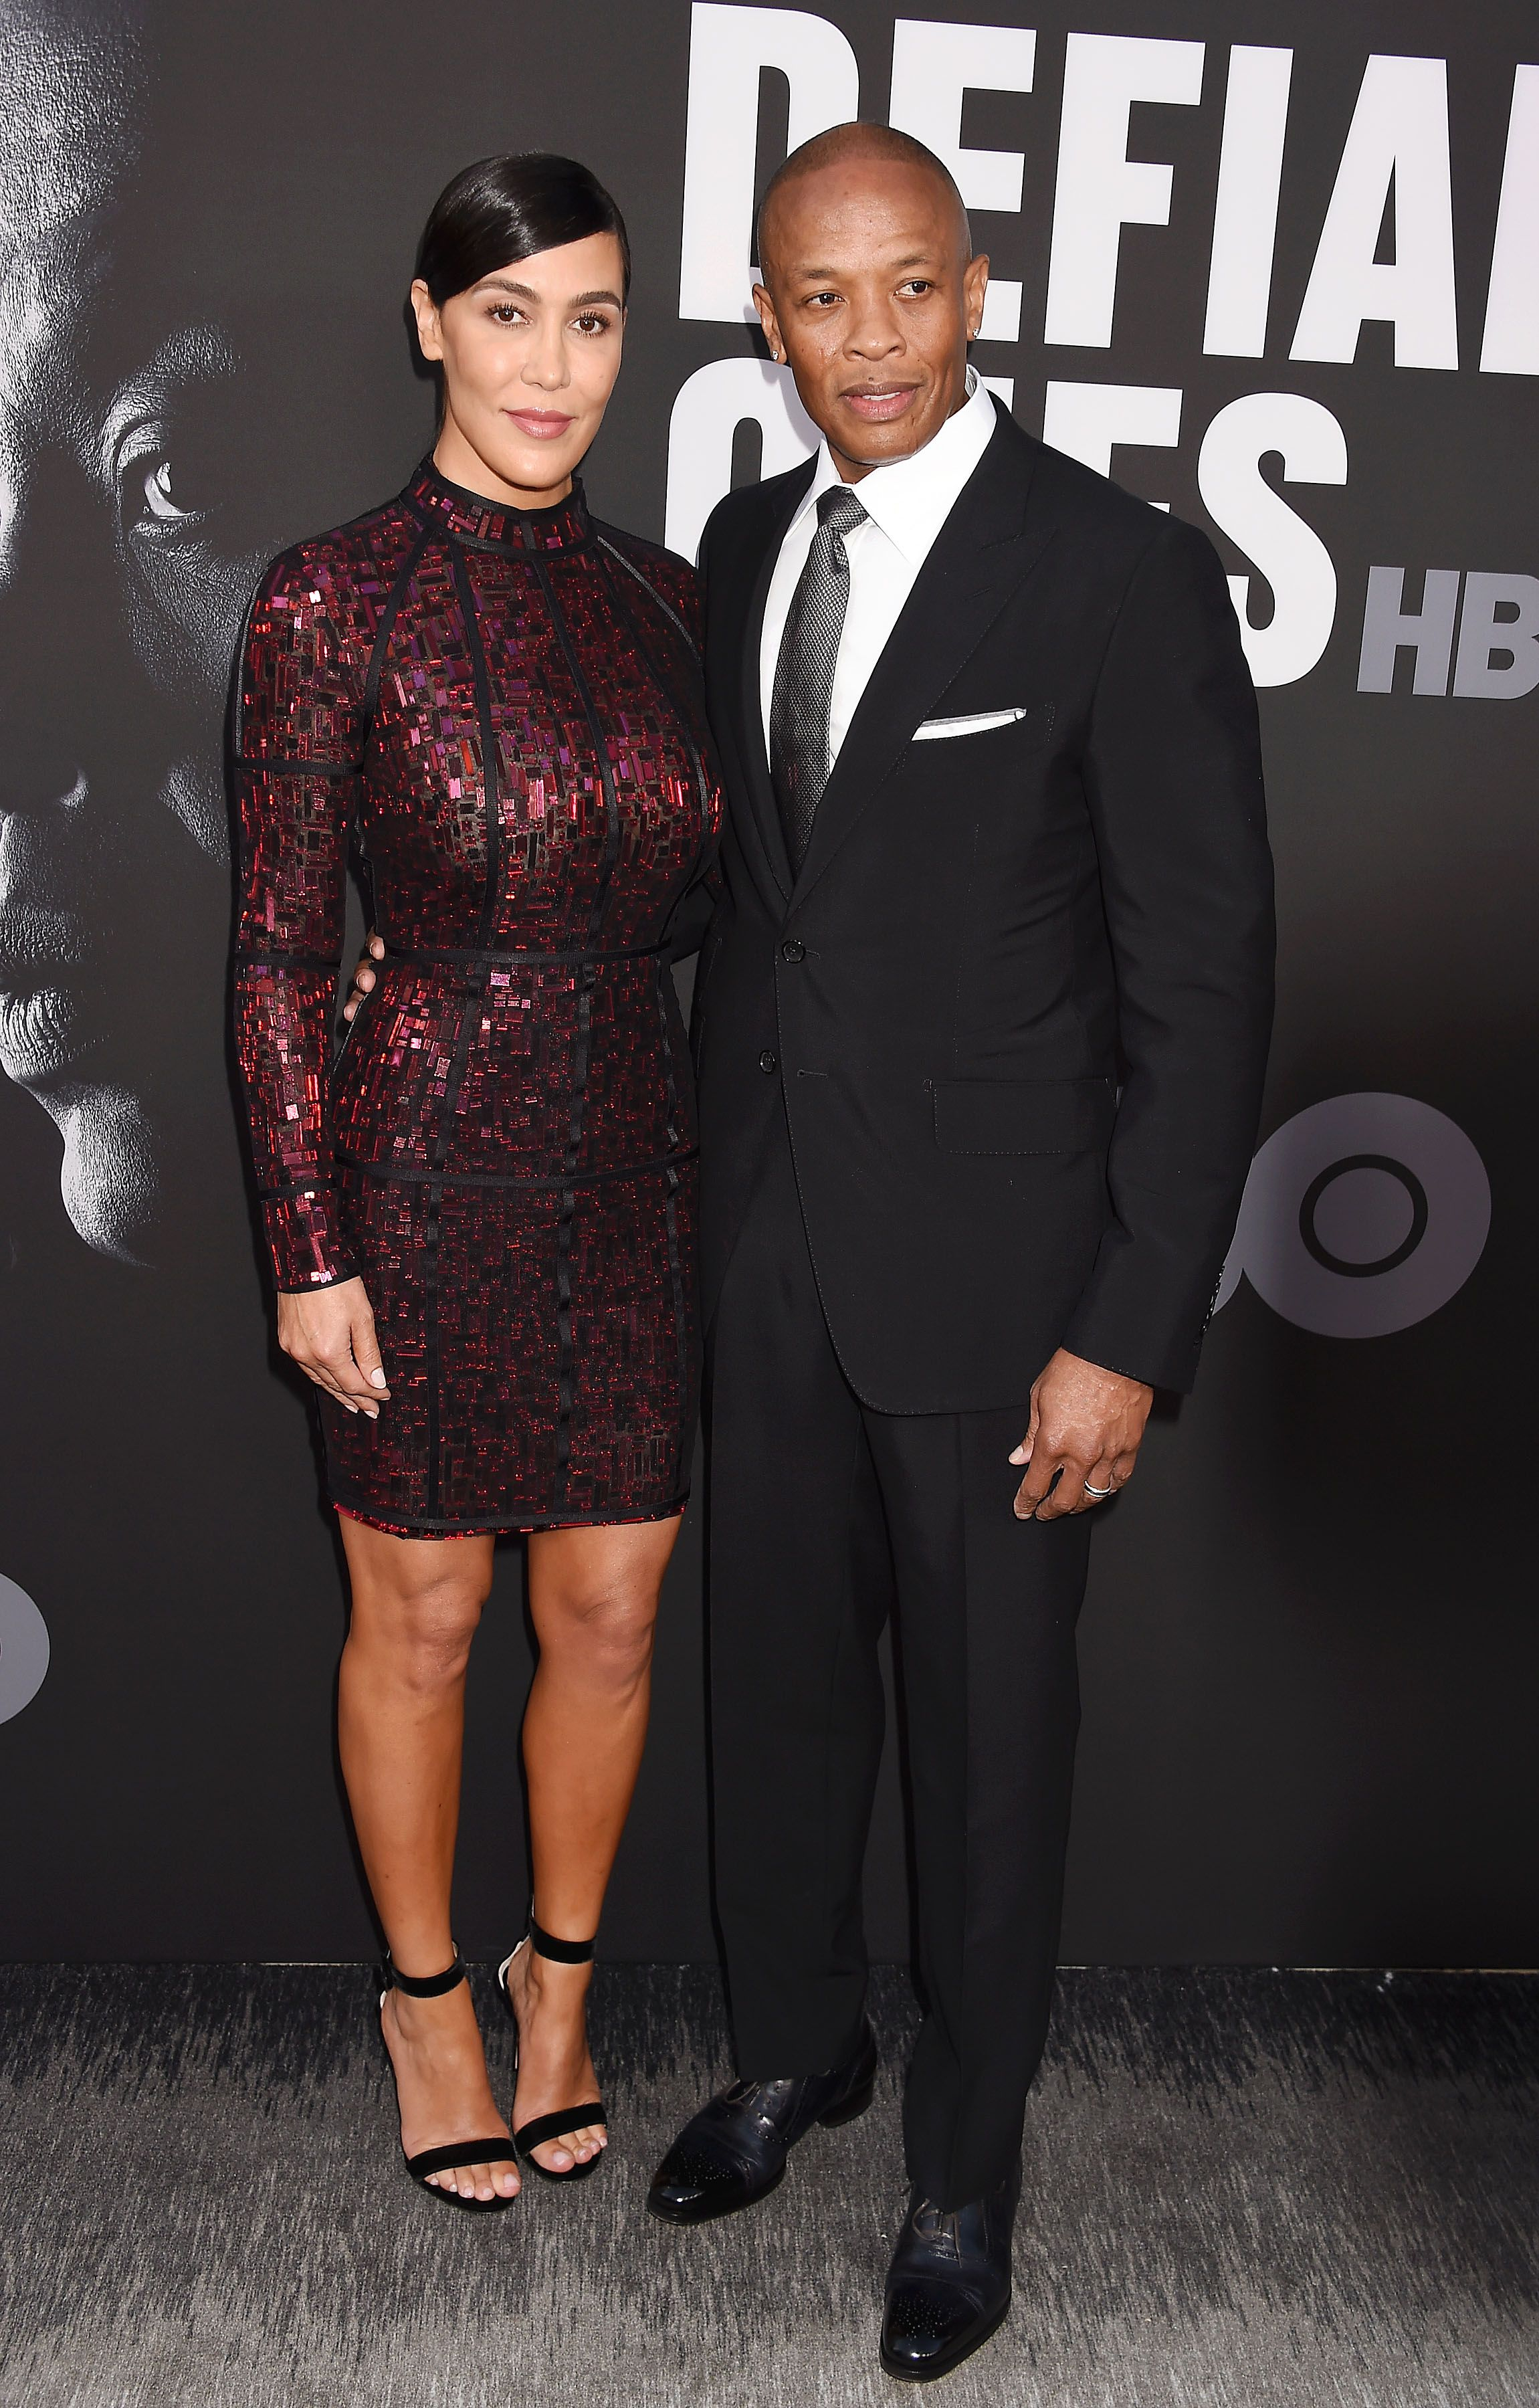 """Nicole Young and Dr. Dre at the premiere of HBO's """"The Defiant Ones"""" on June 22, 2017 